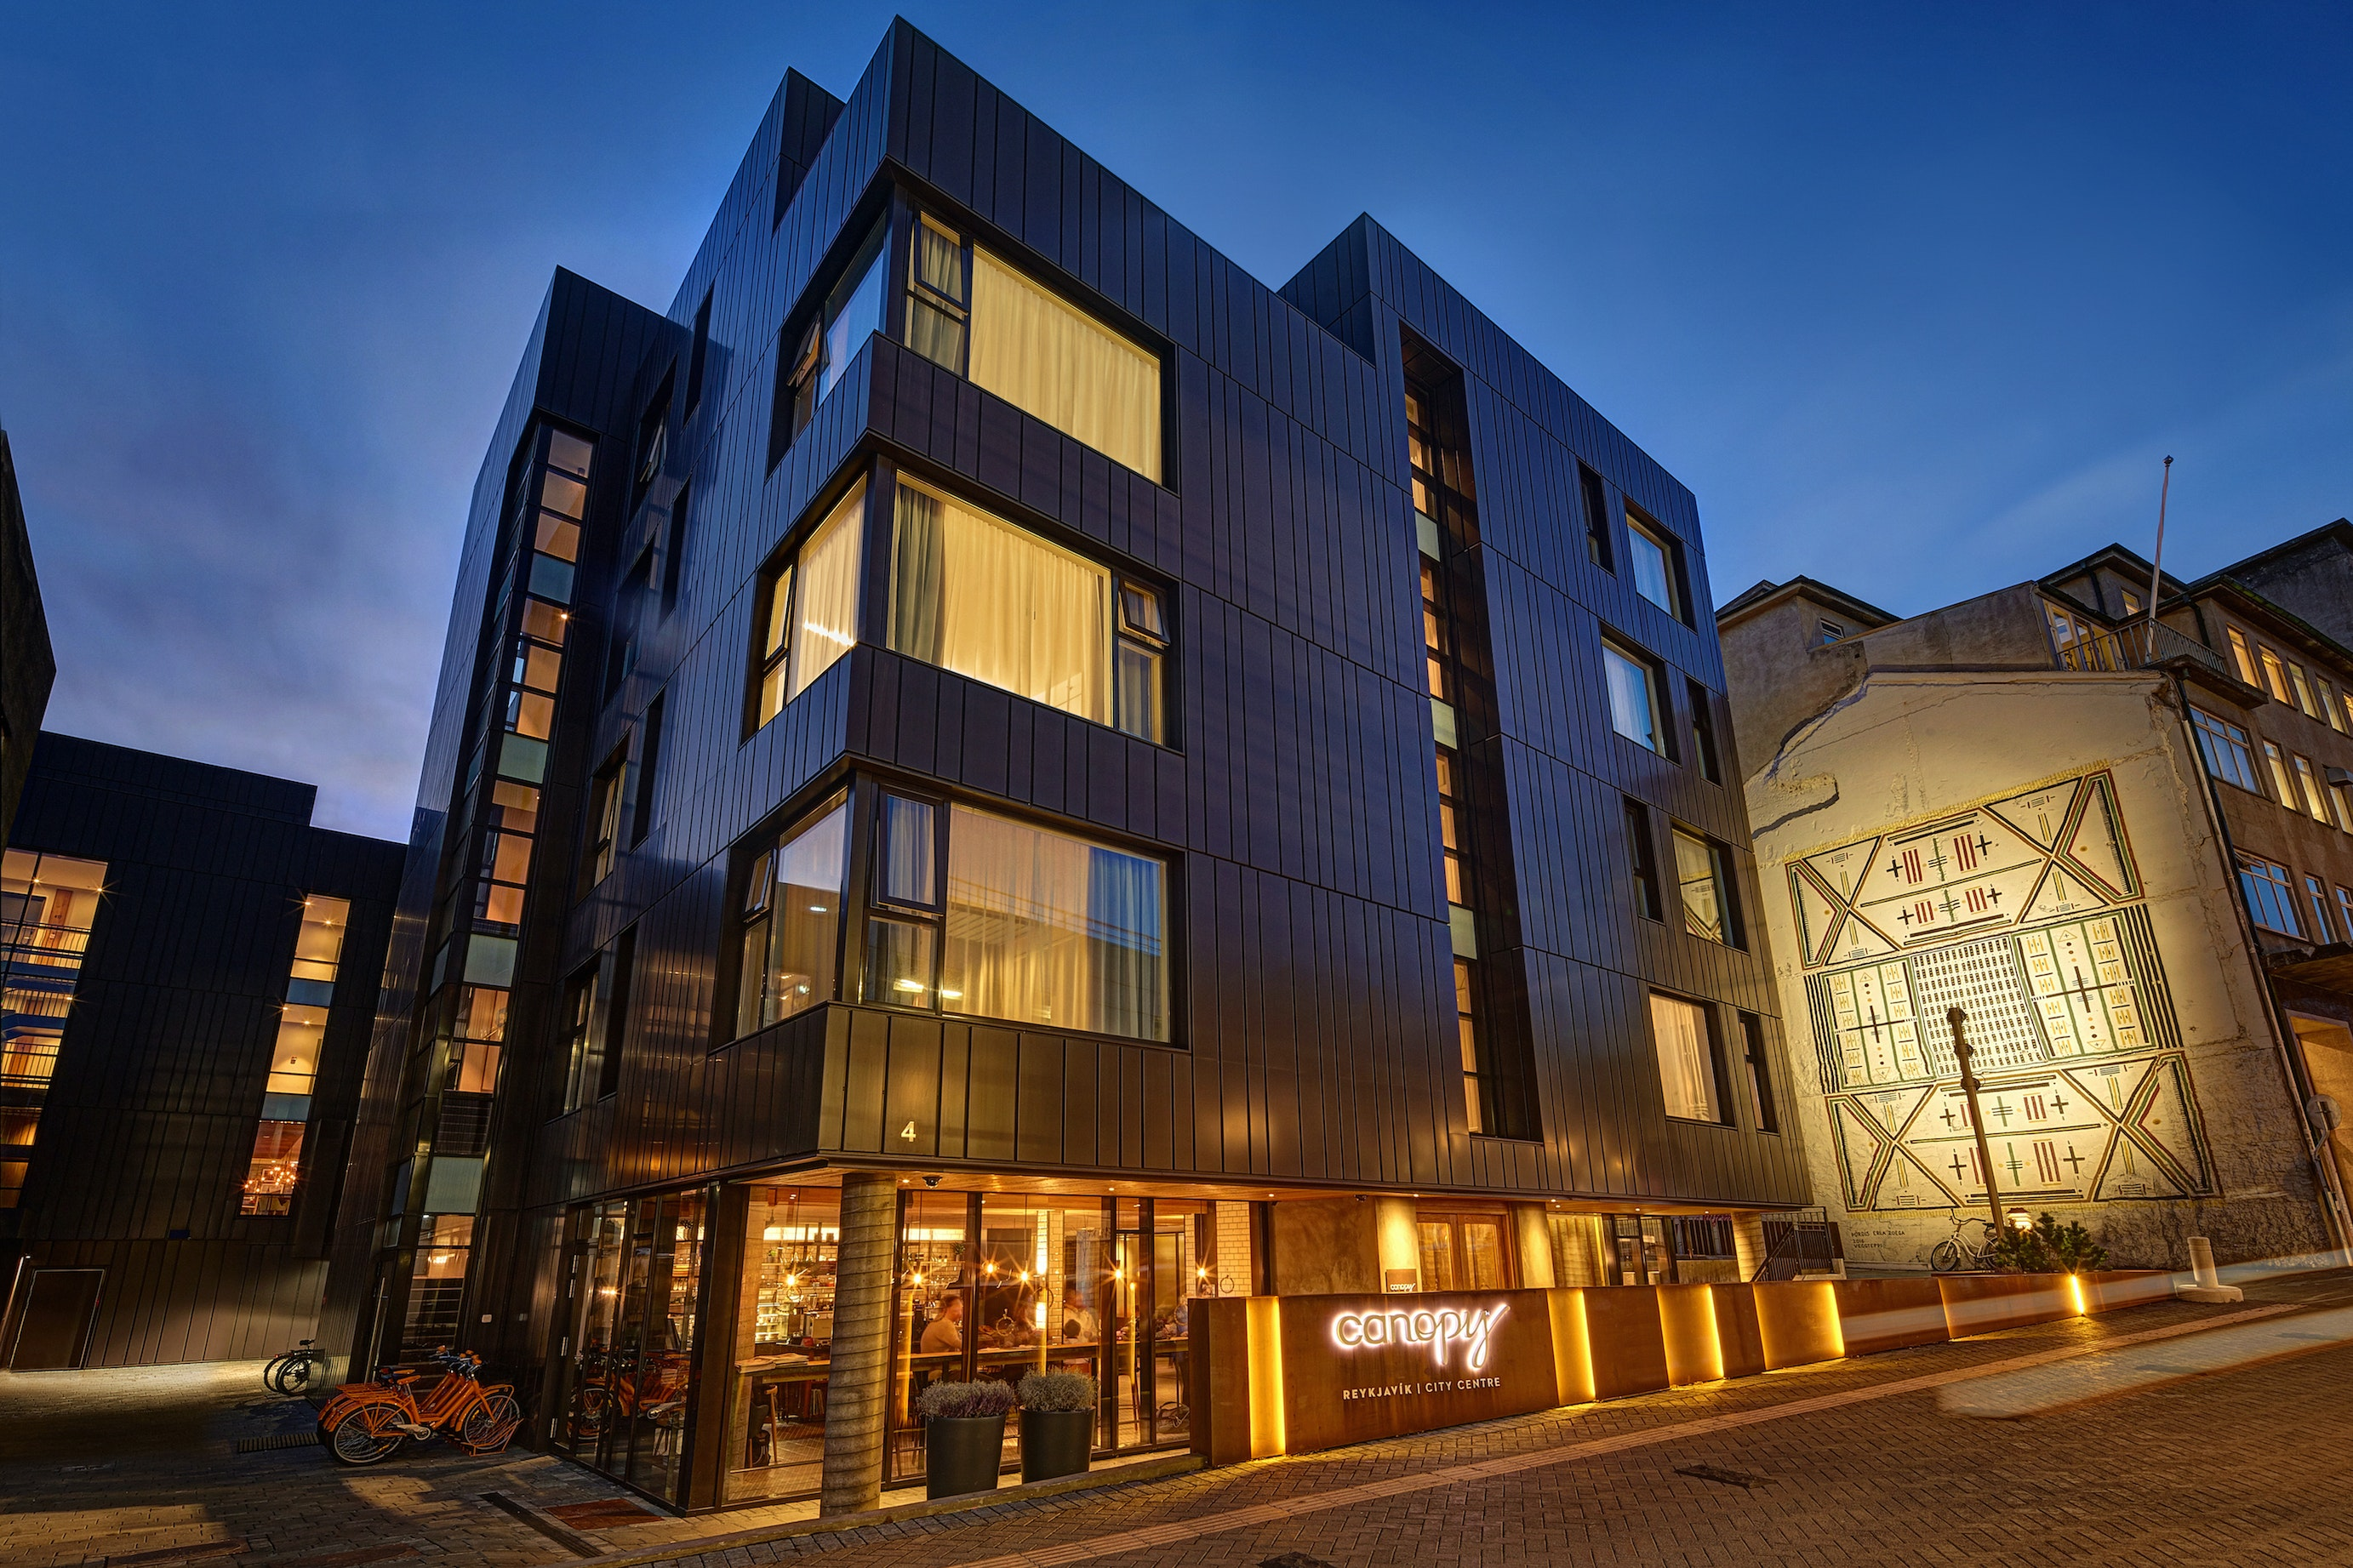 The Canopy by Hilton Reykjavík City Centre in Iceland launched the Canopy brand in 2016.